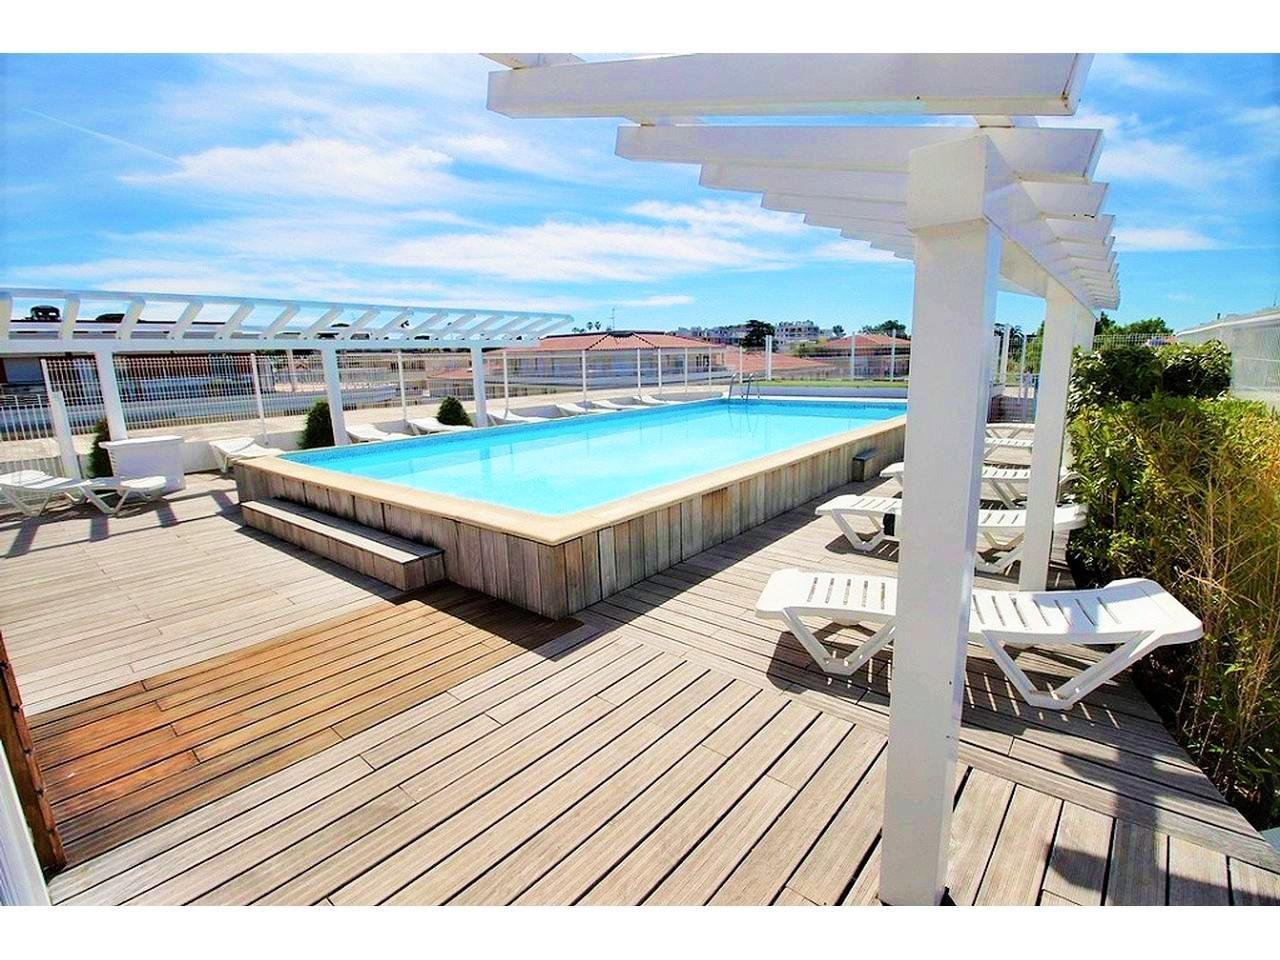 Apartment 15 min from the beach with swimming pool